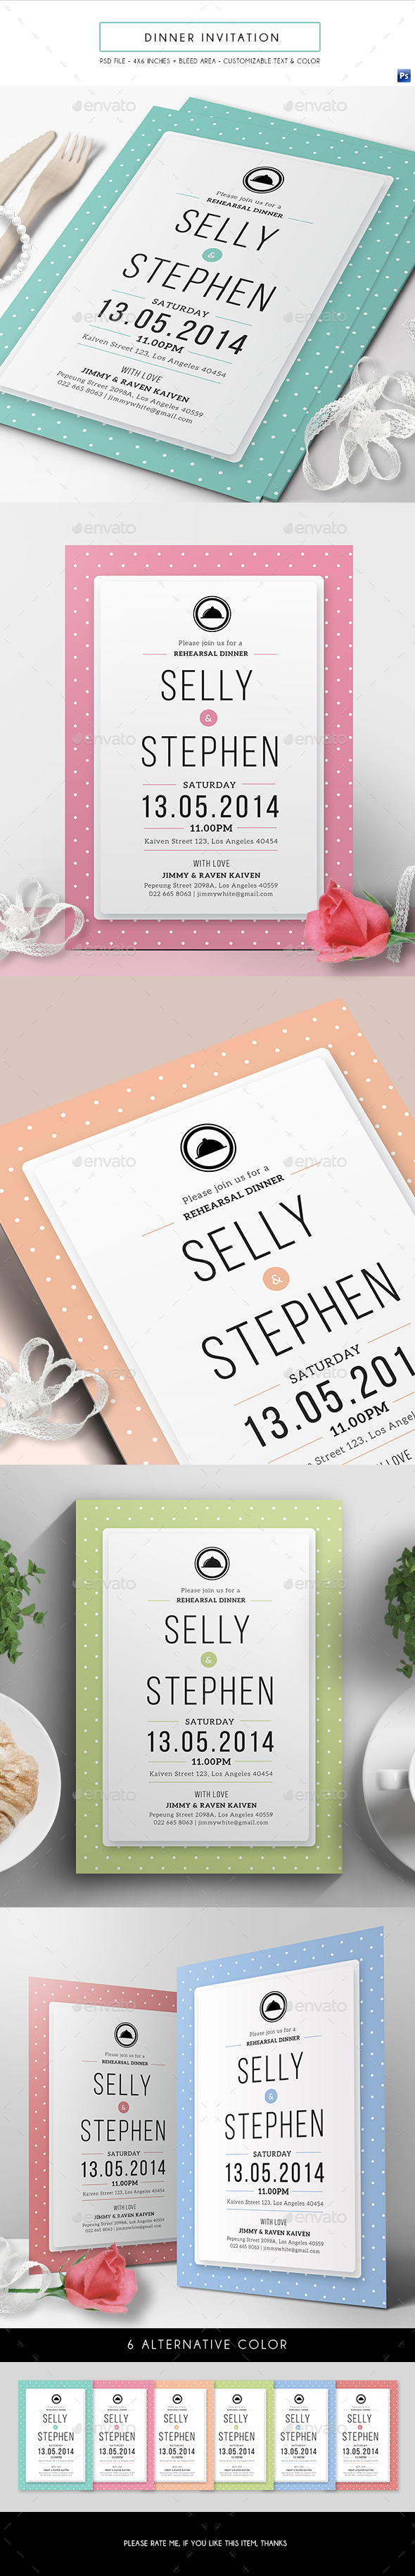 Party Invitation Templates From Graphicriver Page 9